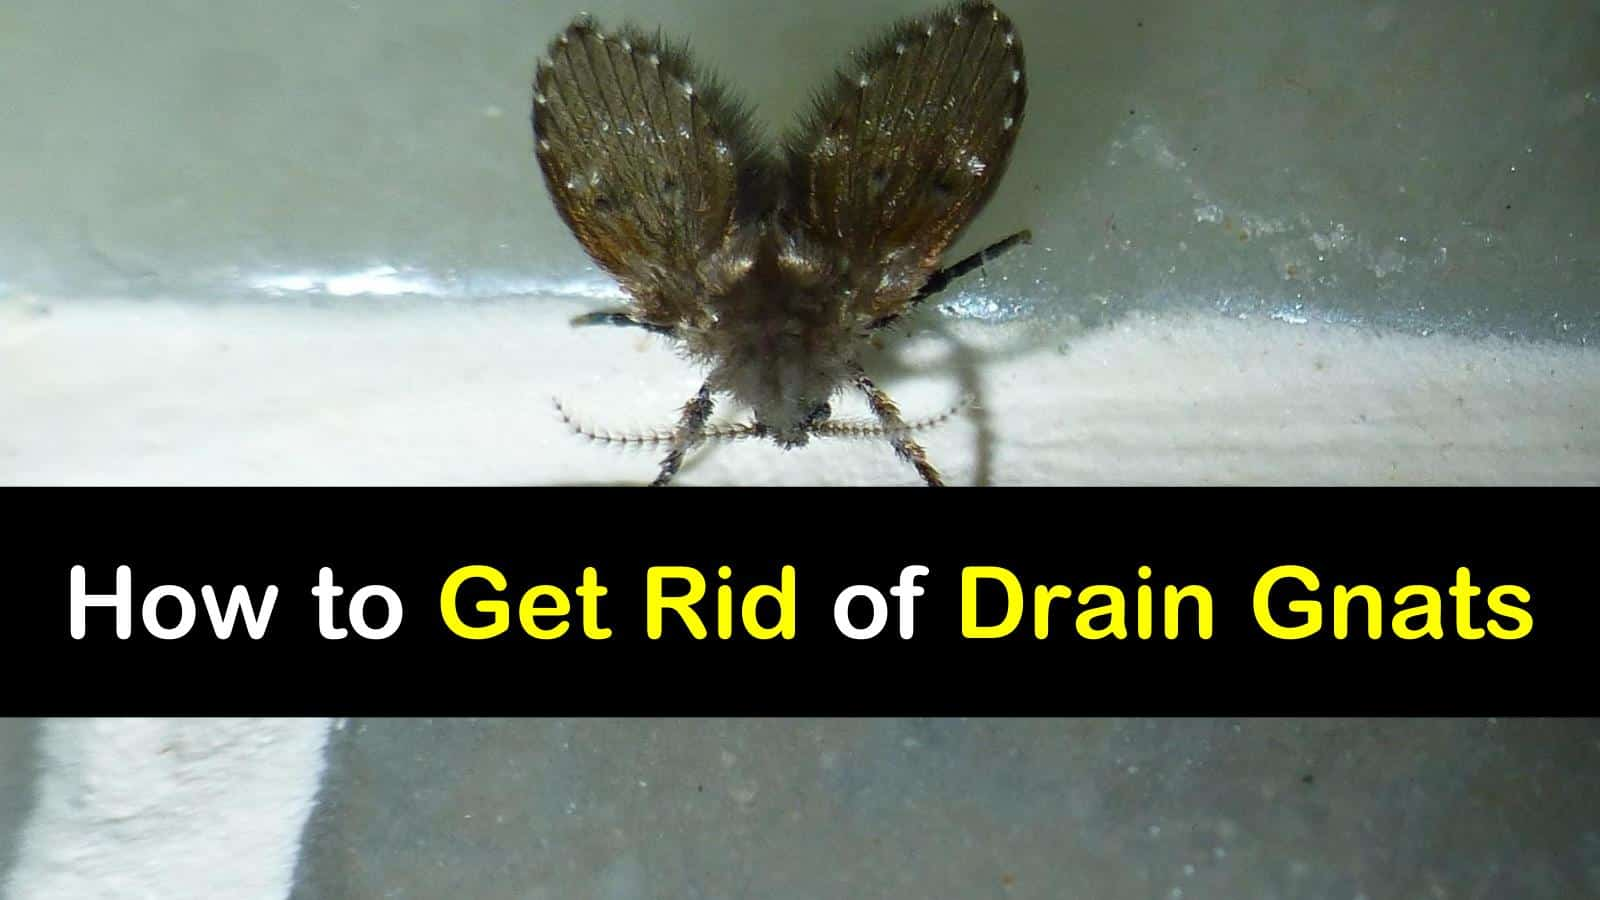 How to Get Rid of Drain Gnats titleimg1